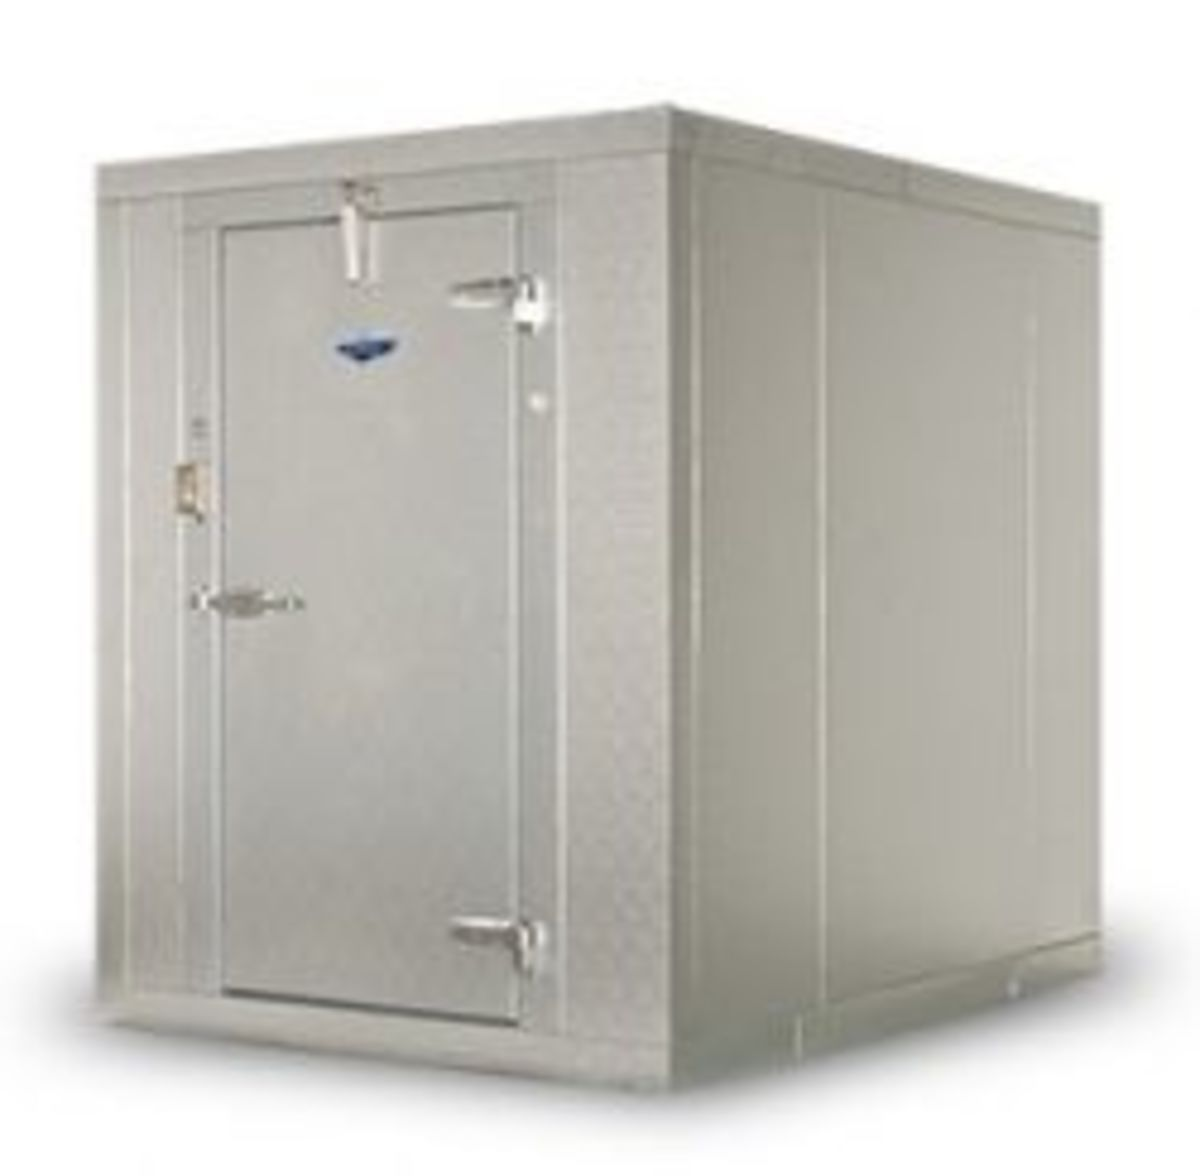 A 6X8 Walk-in Freezer